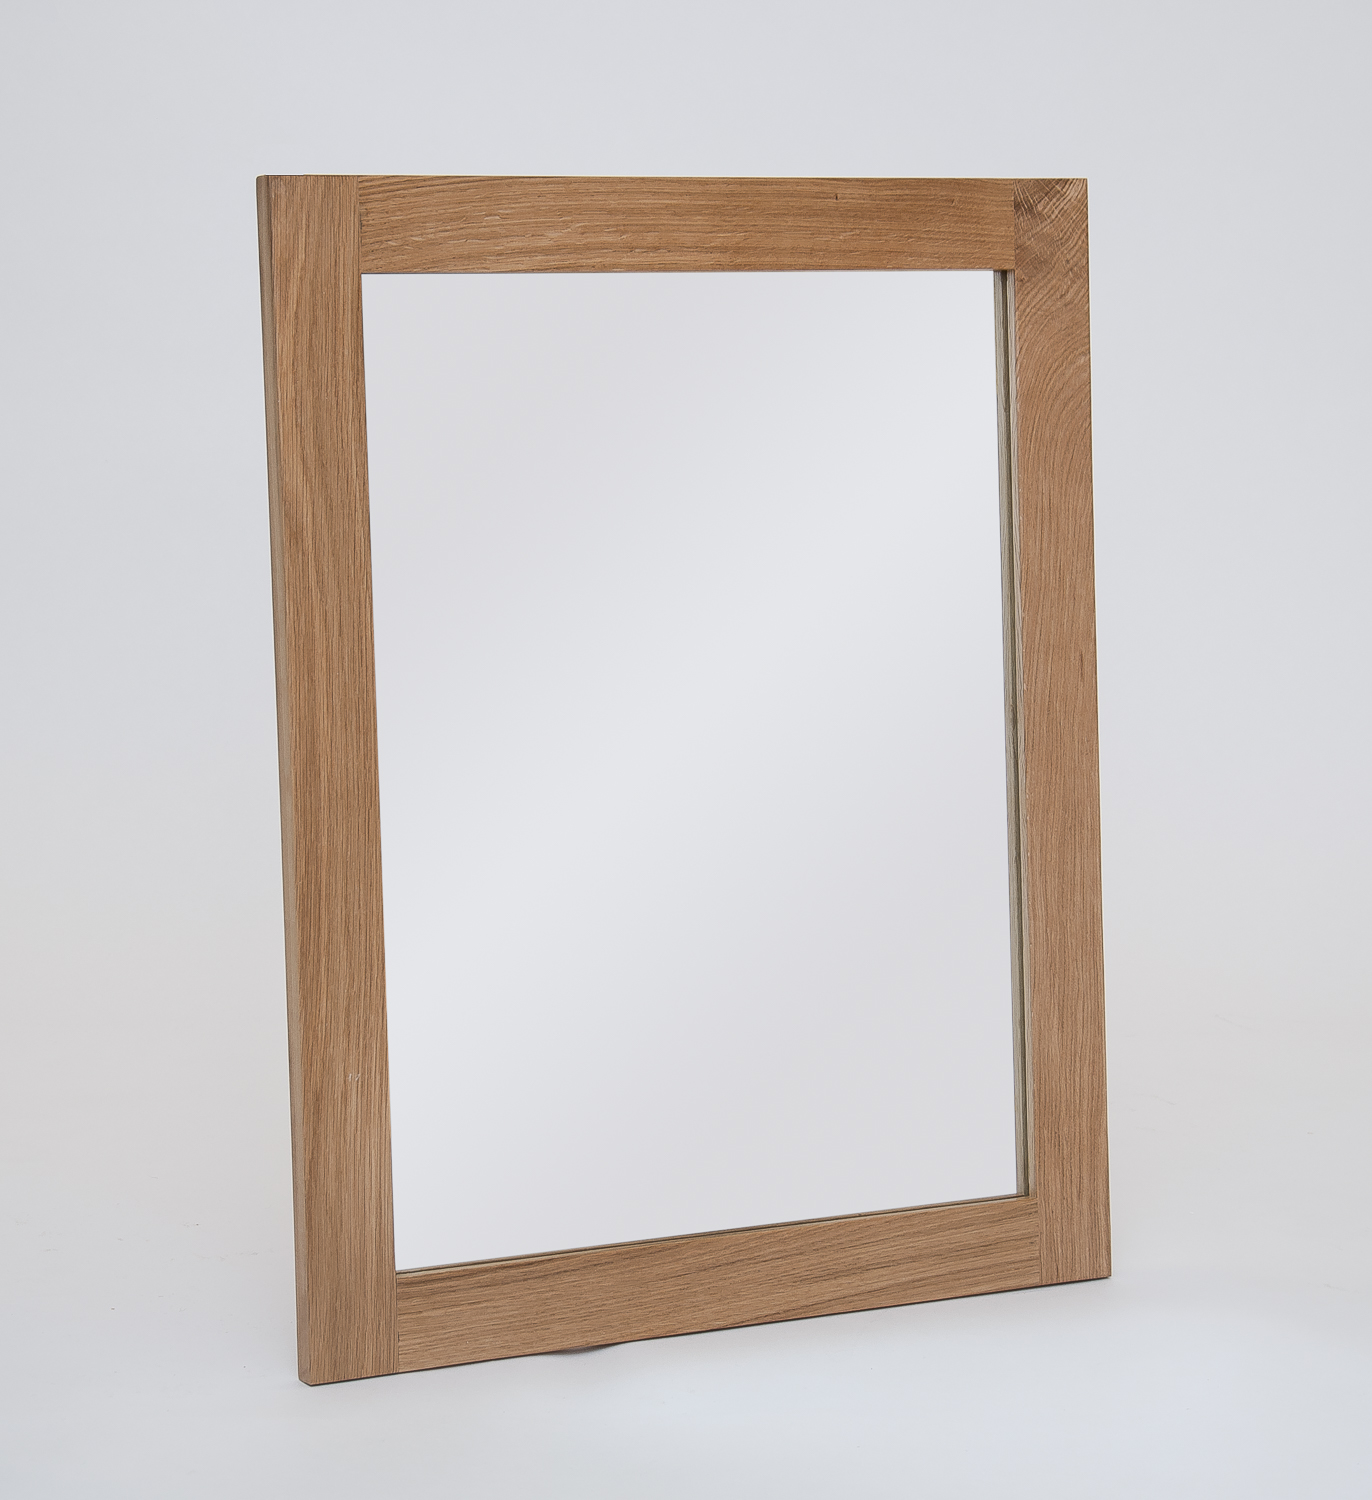 Hereford oak small wall mirror for Small wall mirrors